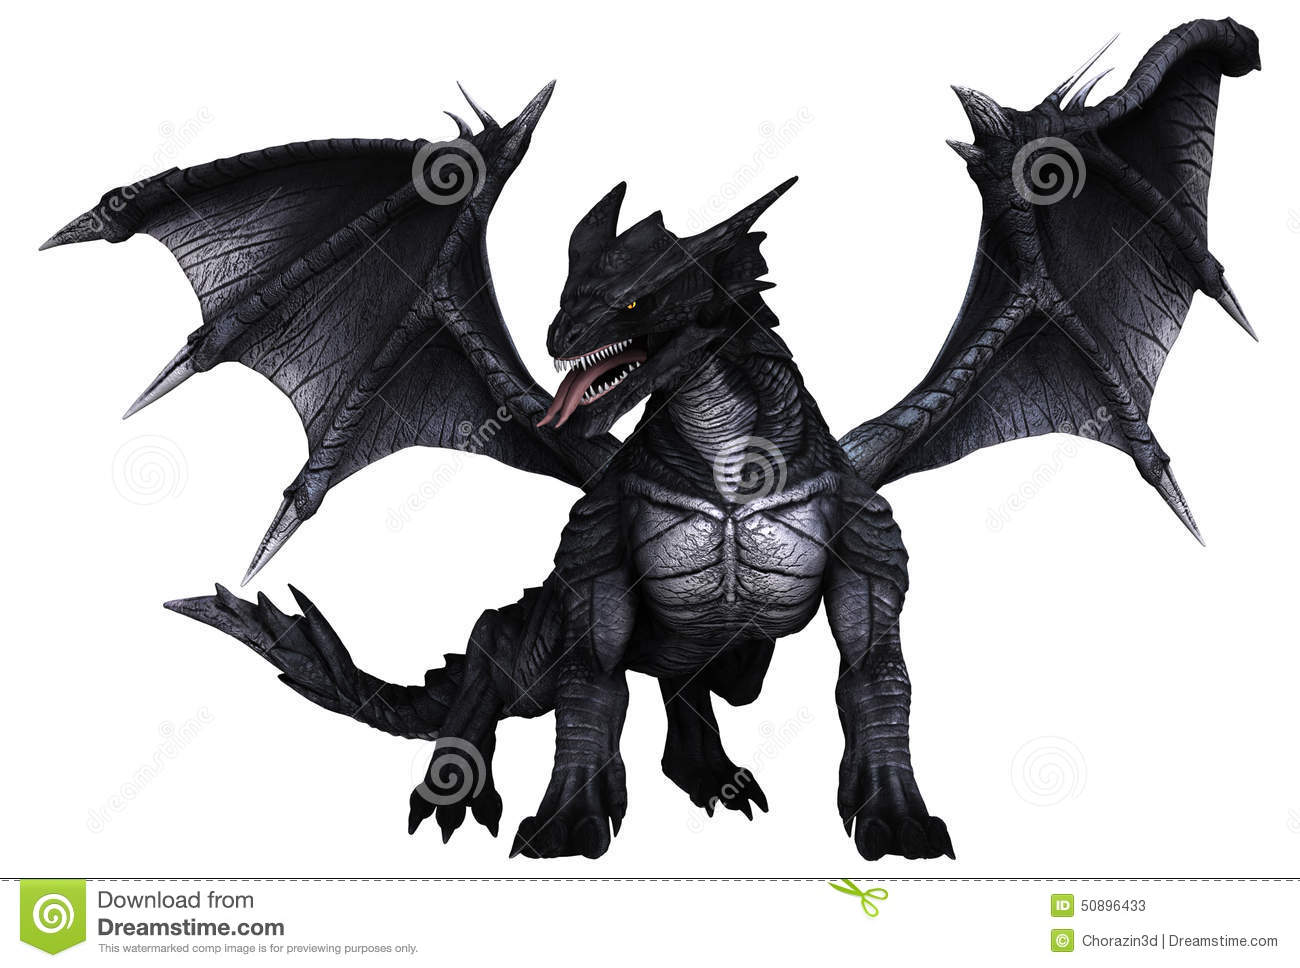 Dragons Dogma Where Is Black Cat